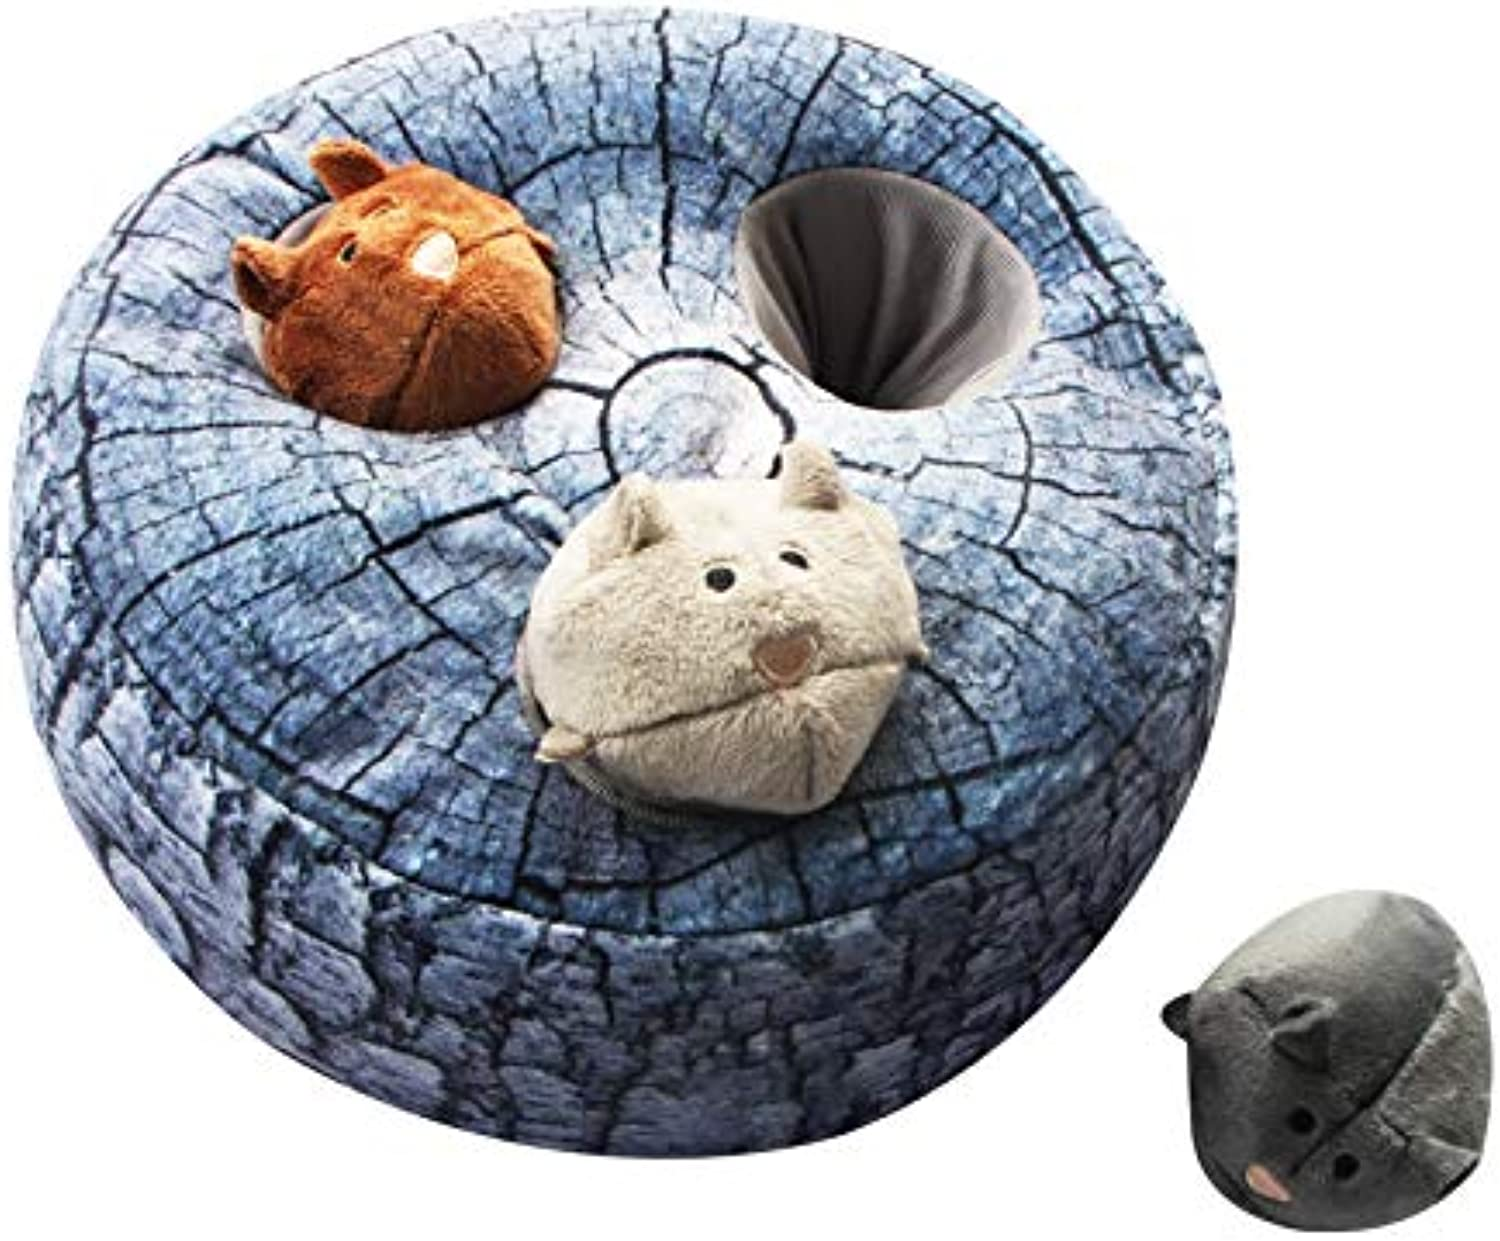 AIPINQI Dog Squeaky Toys Large Hide and Seek Puzzle Plush Dog Toy Durable Interactive Dog Toys for Large Medium Small Dogs, Pets, Christmas Dog Toy, Grey